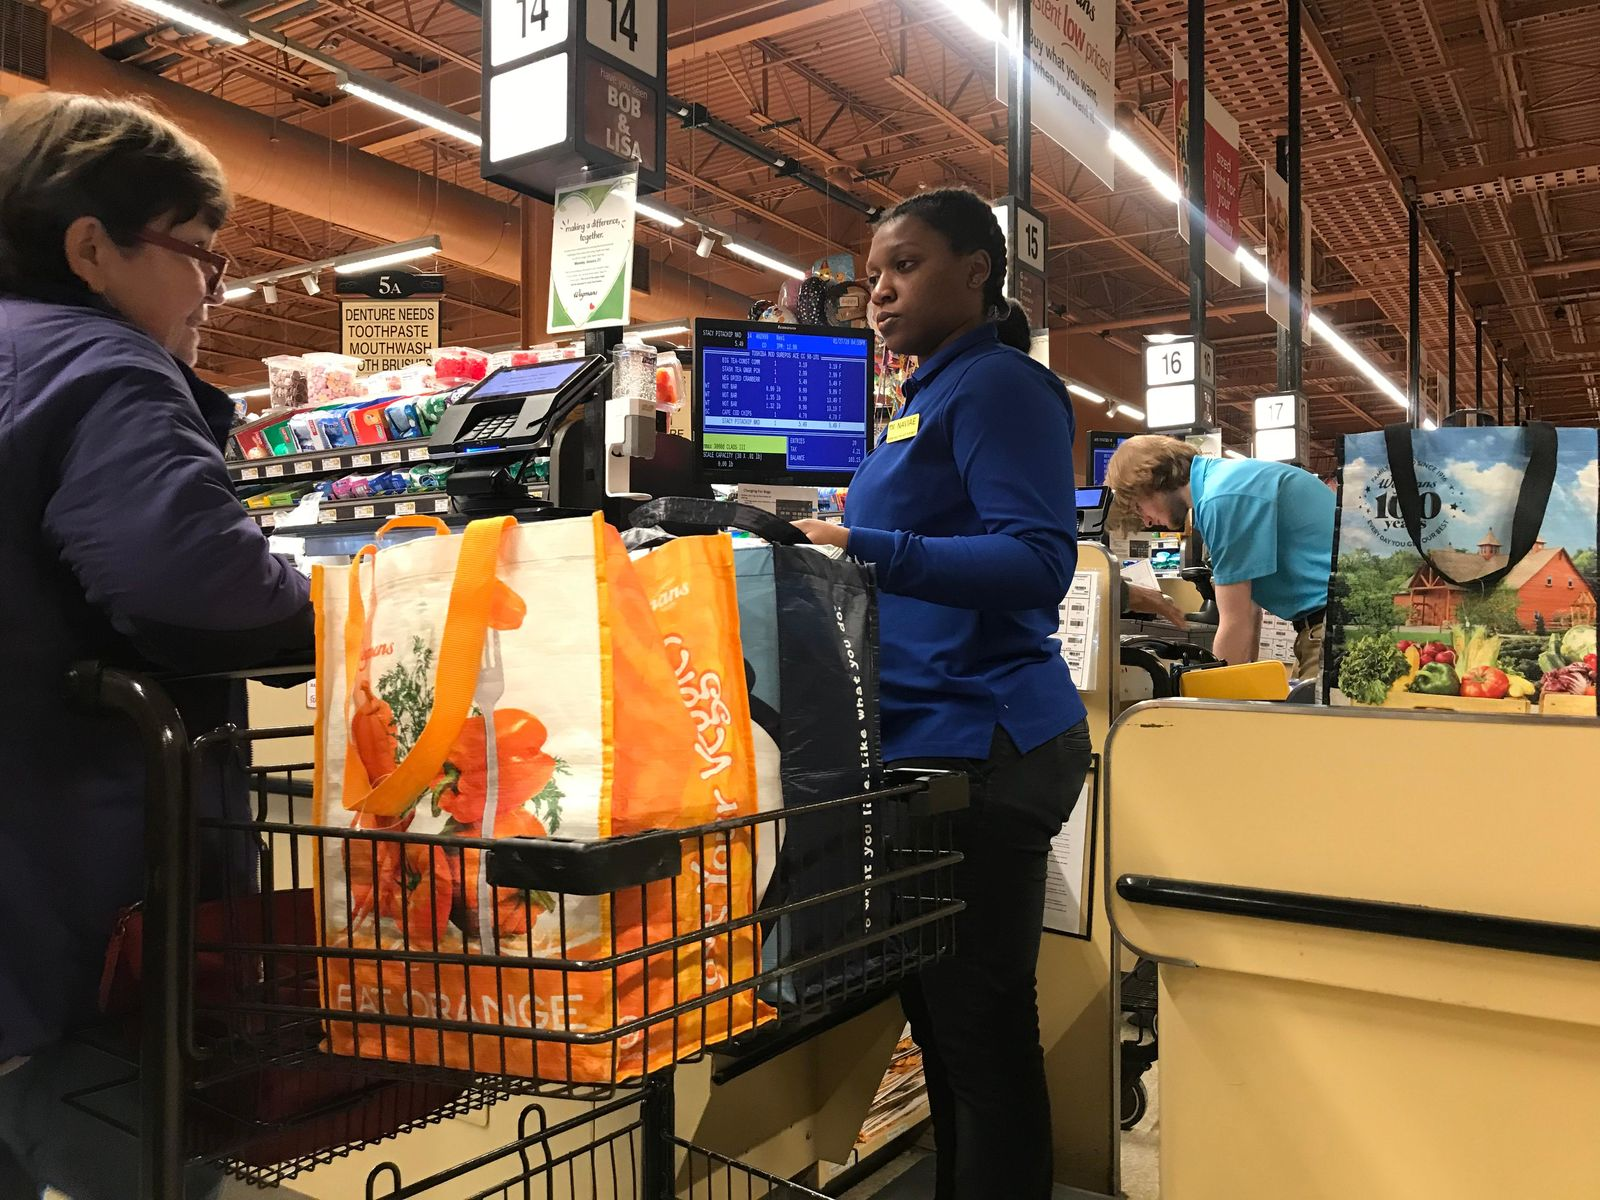 Wegmans shoppers adjust to removal of plastic bags ahead of statewide ban